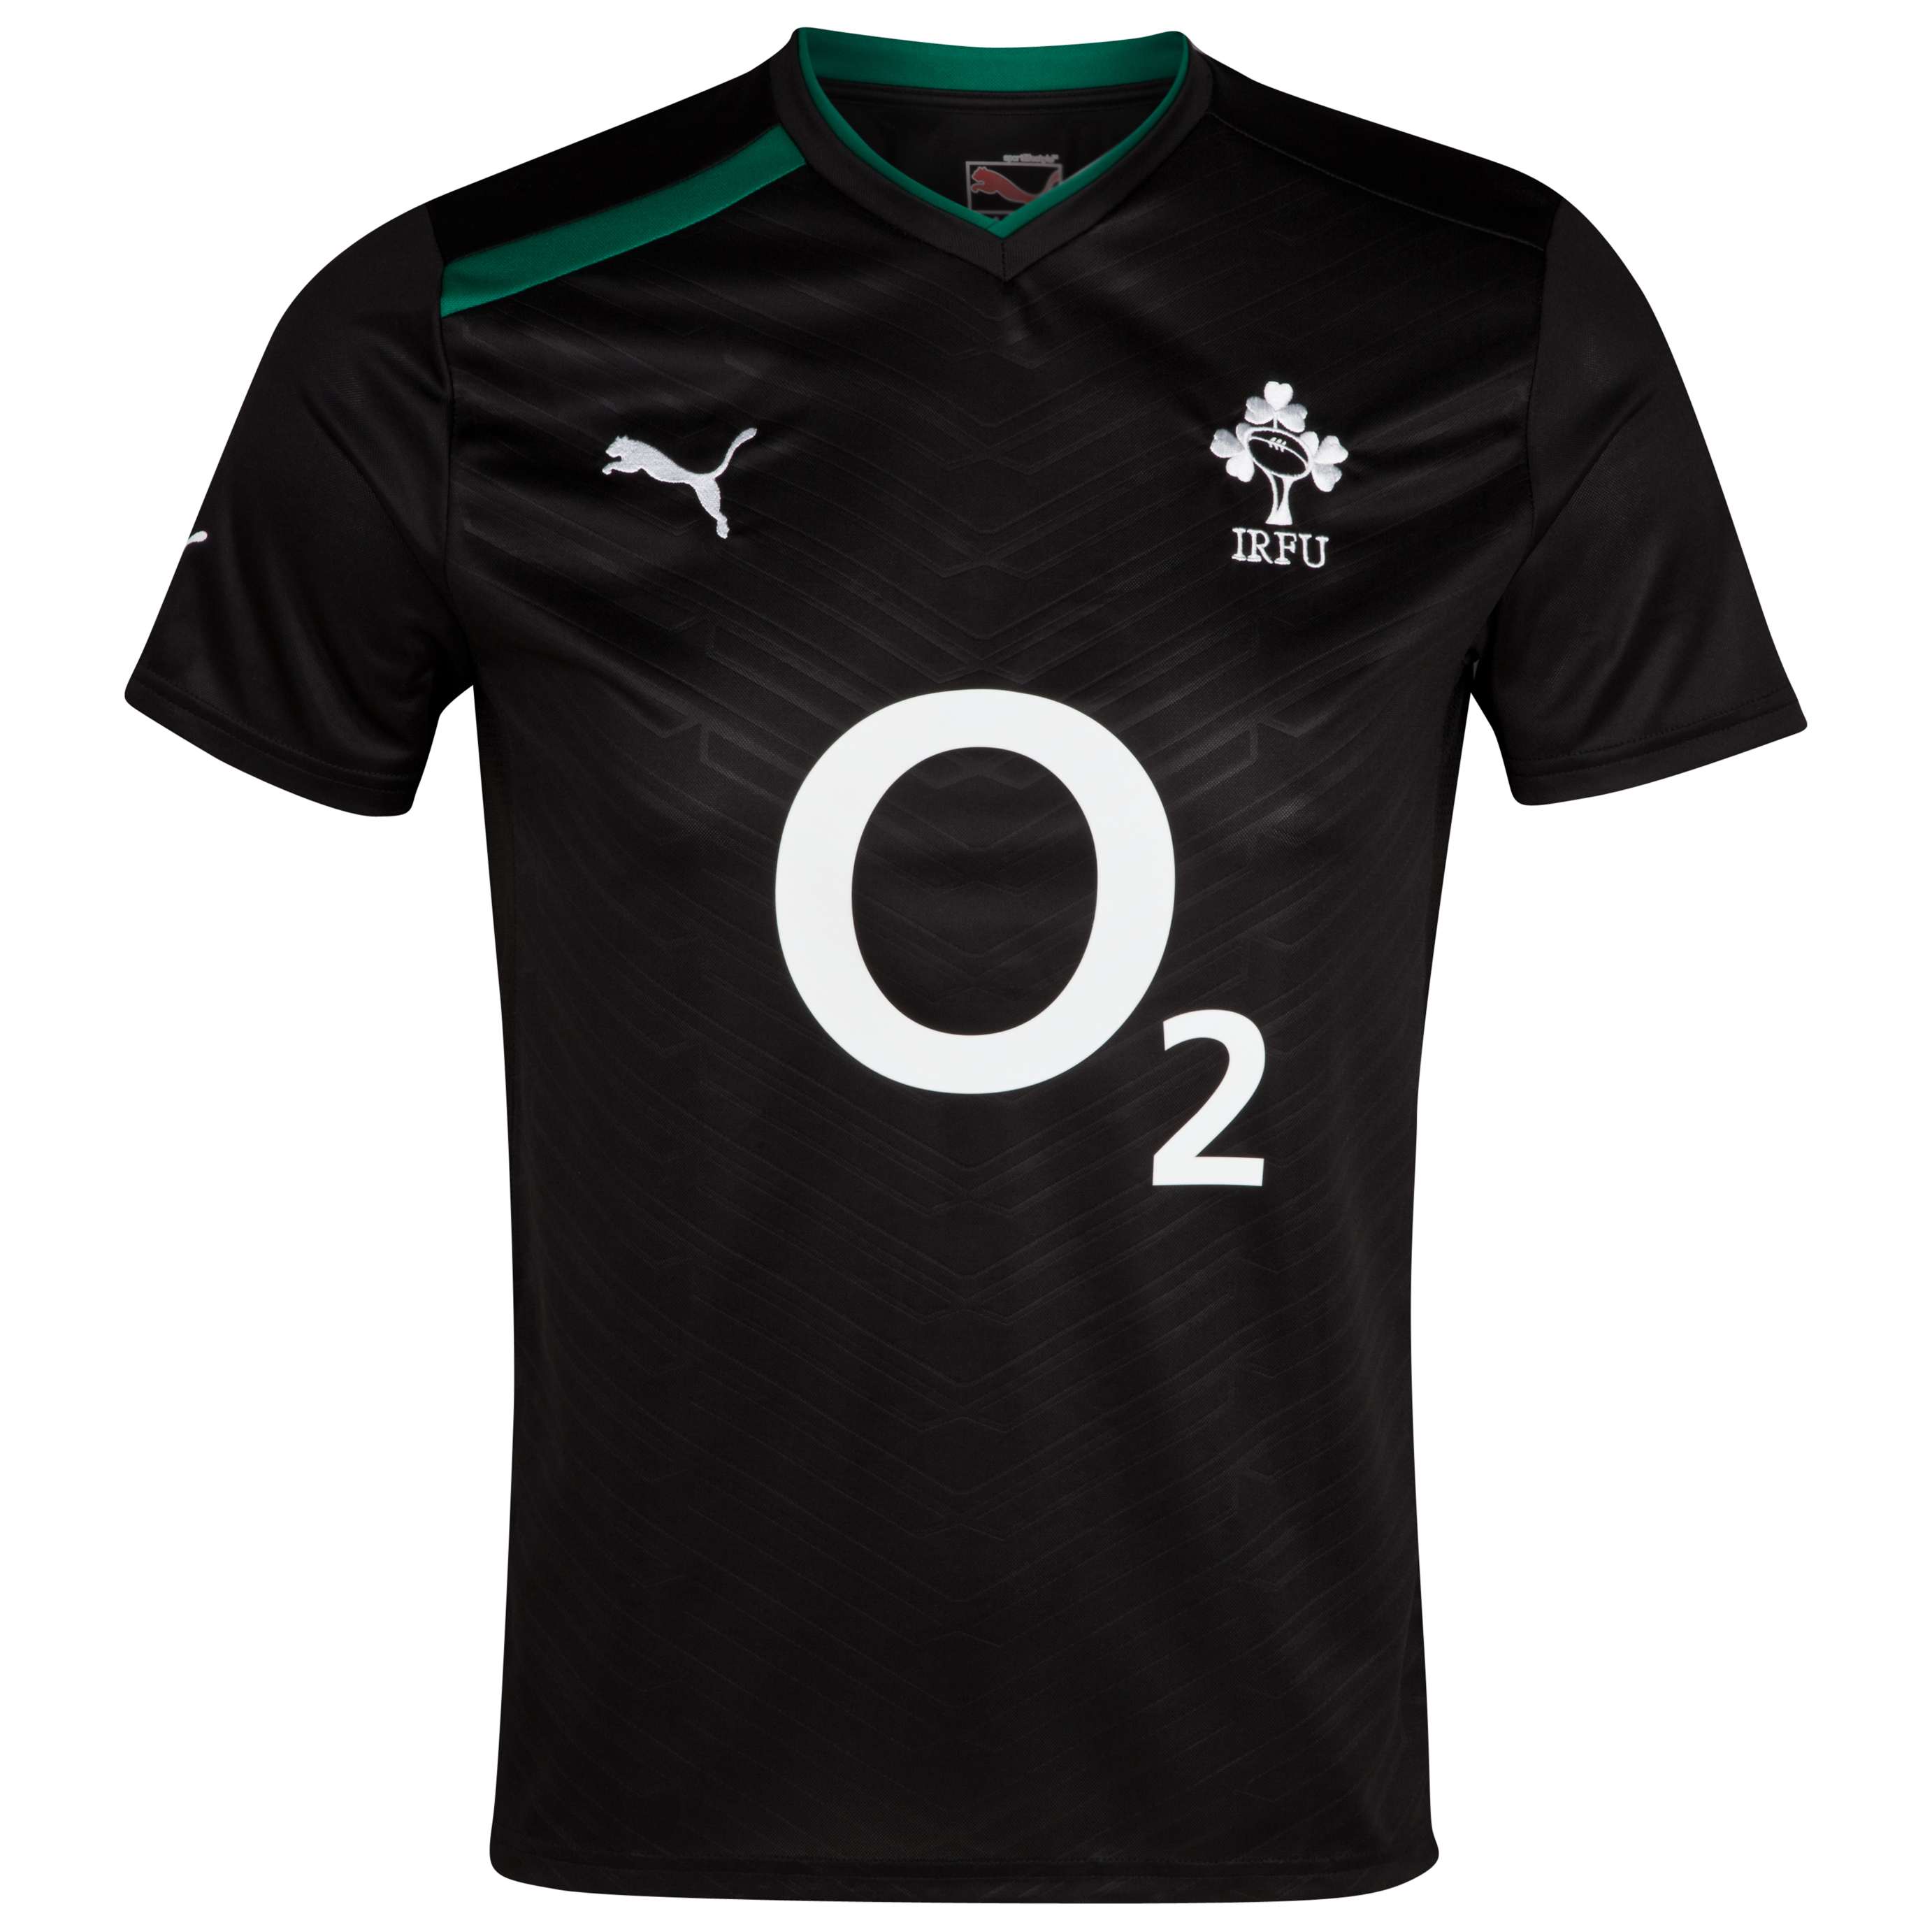 Ireland Rugby Workout T-Shirt - Black/Green